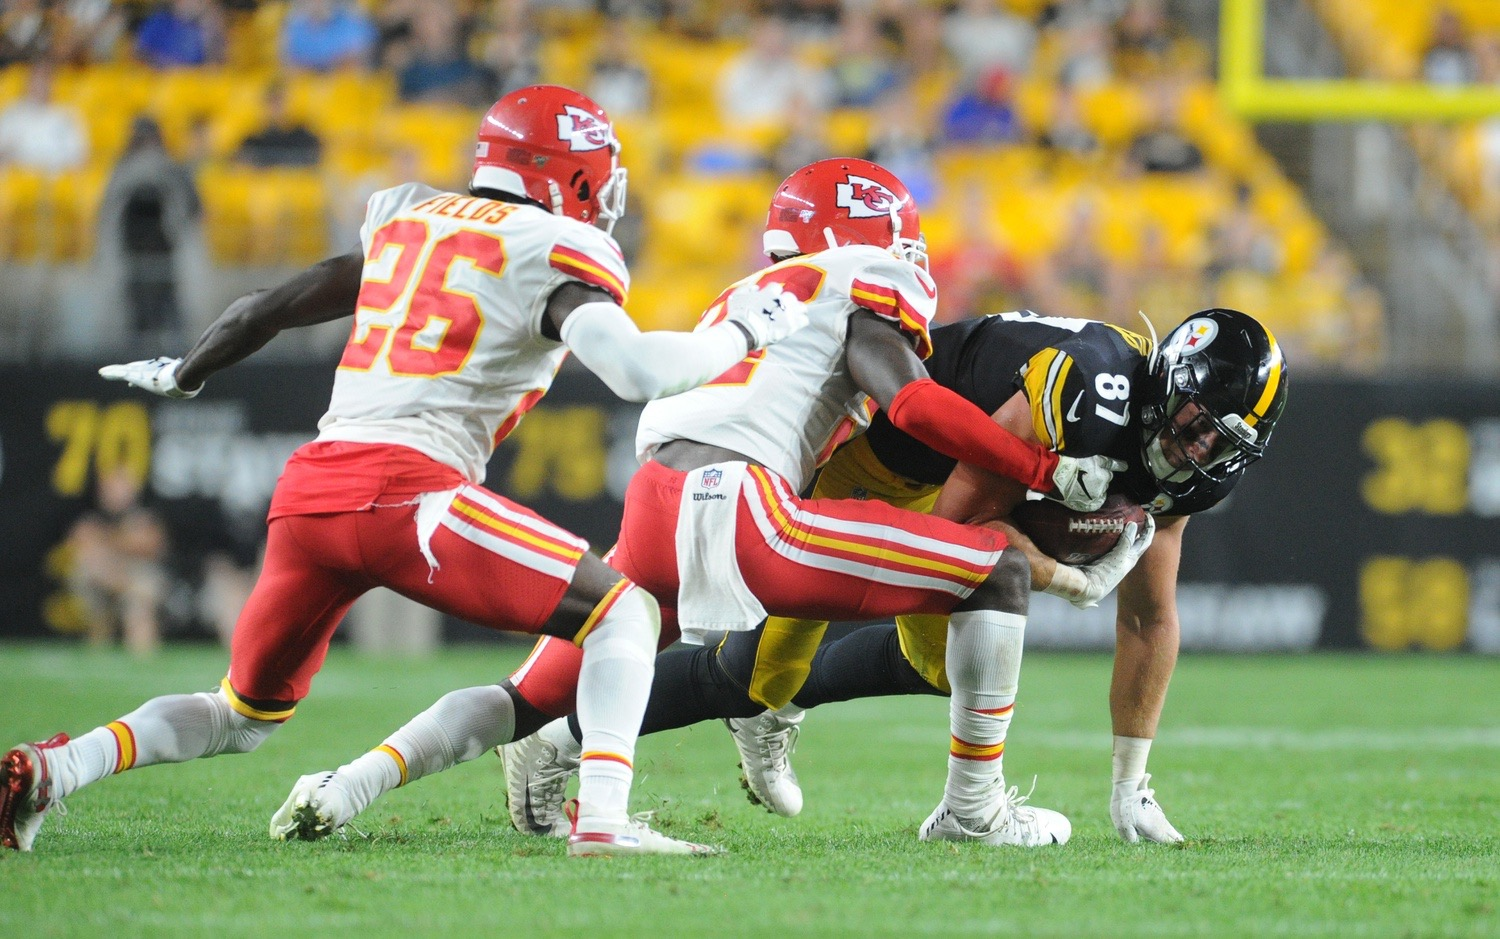 LIVE UPDATES: Chiefs Whittling Down Roster to Initial 53 Players